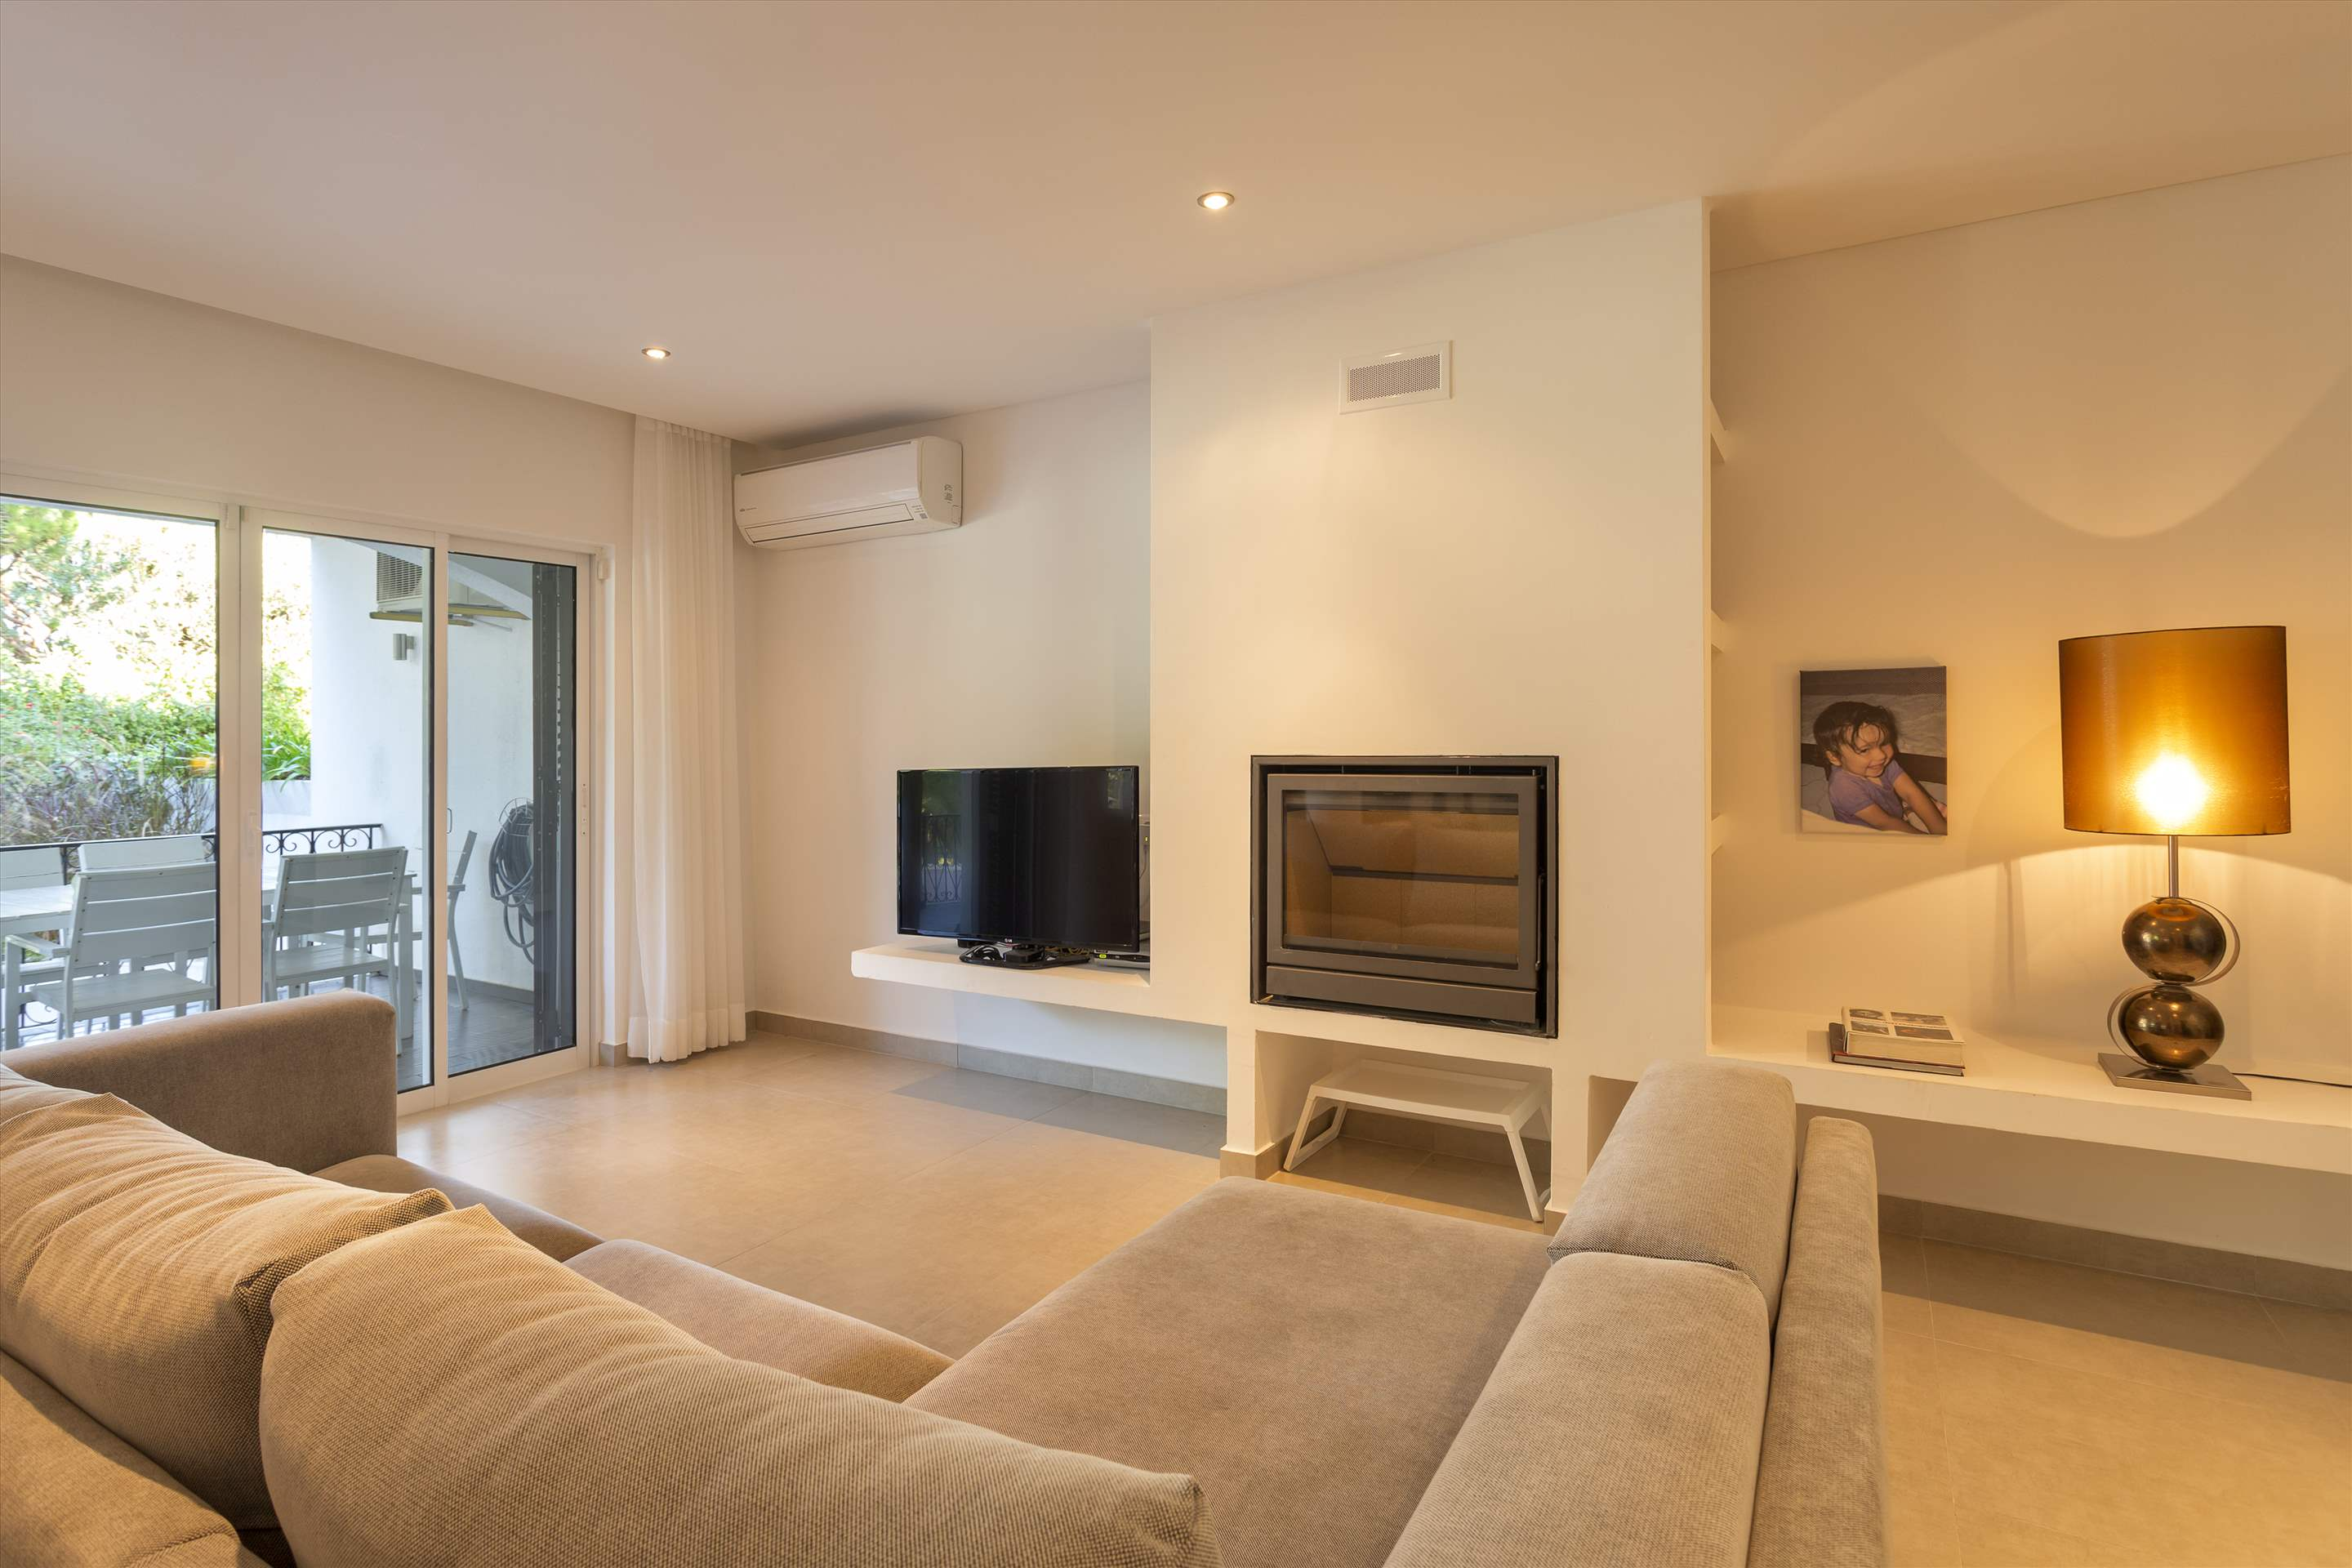 Apartment Academia, 3 bedroom apartment in Vale do Lobo, Algarve Photo #5